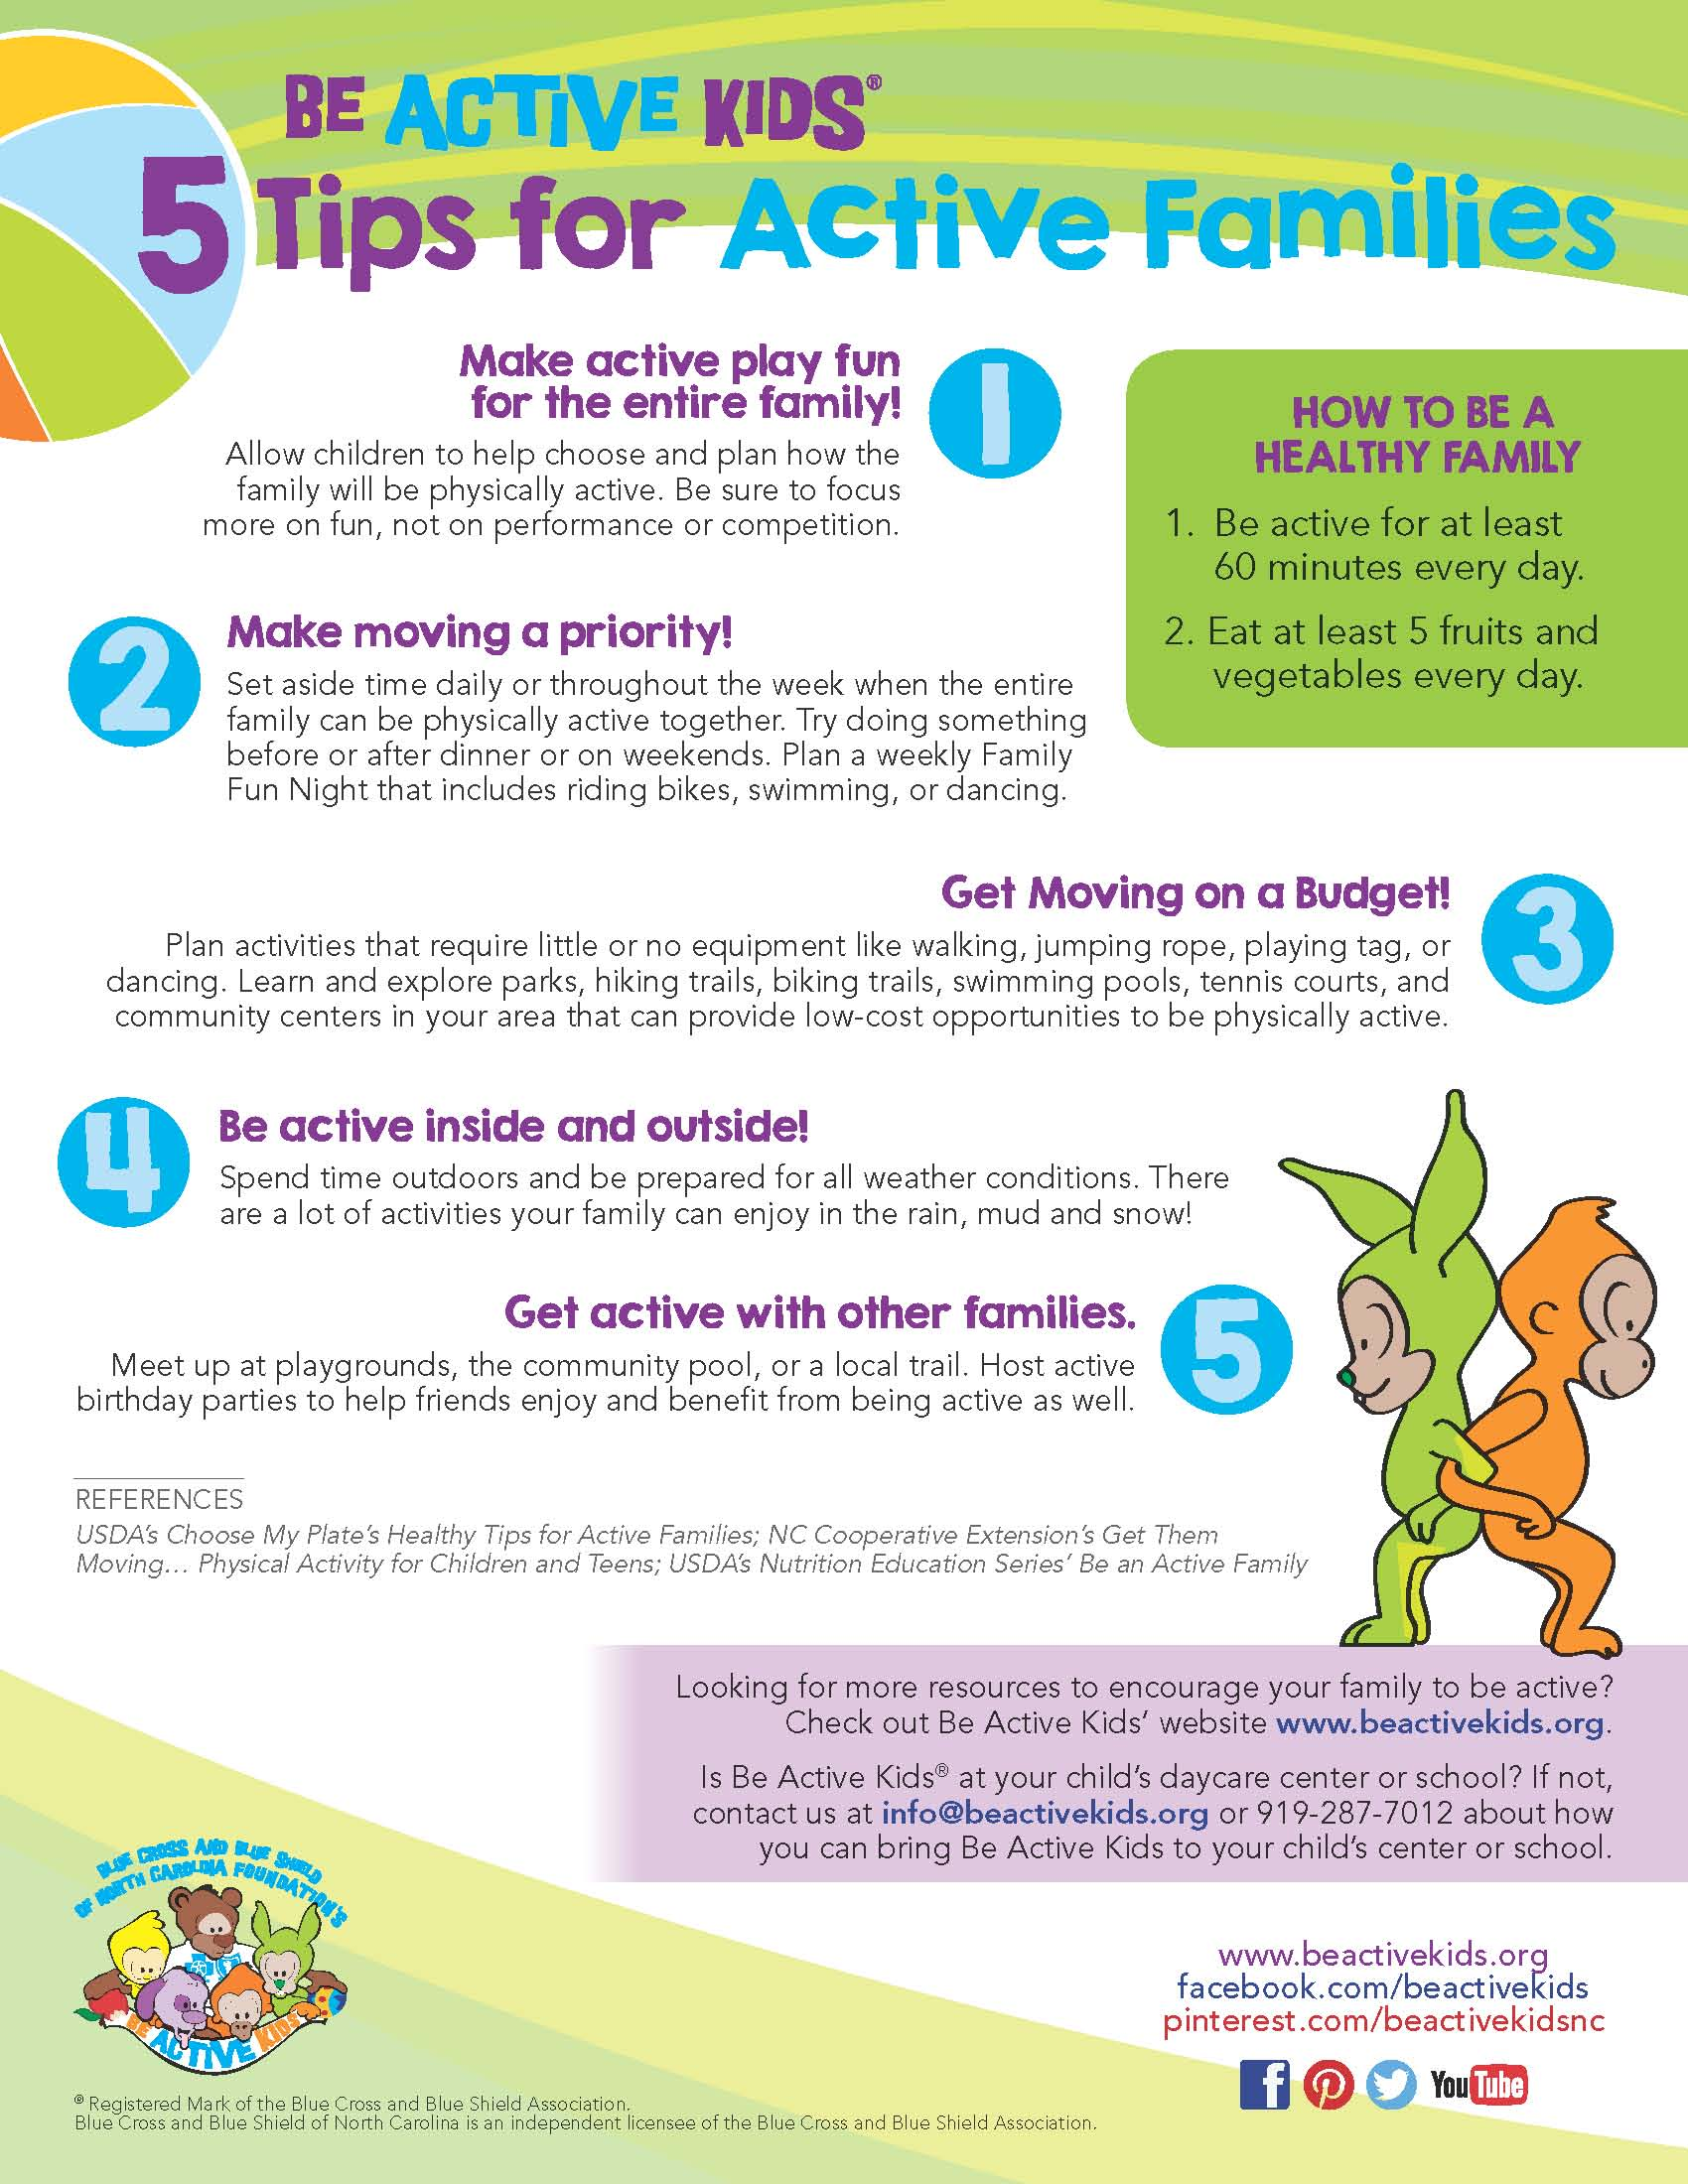 Tips for Active Families